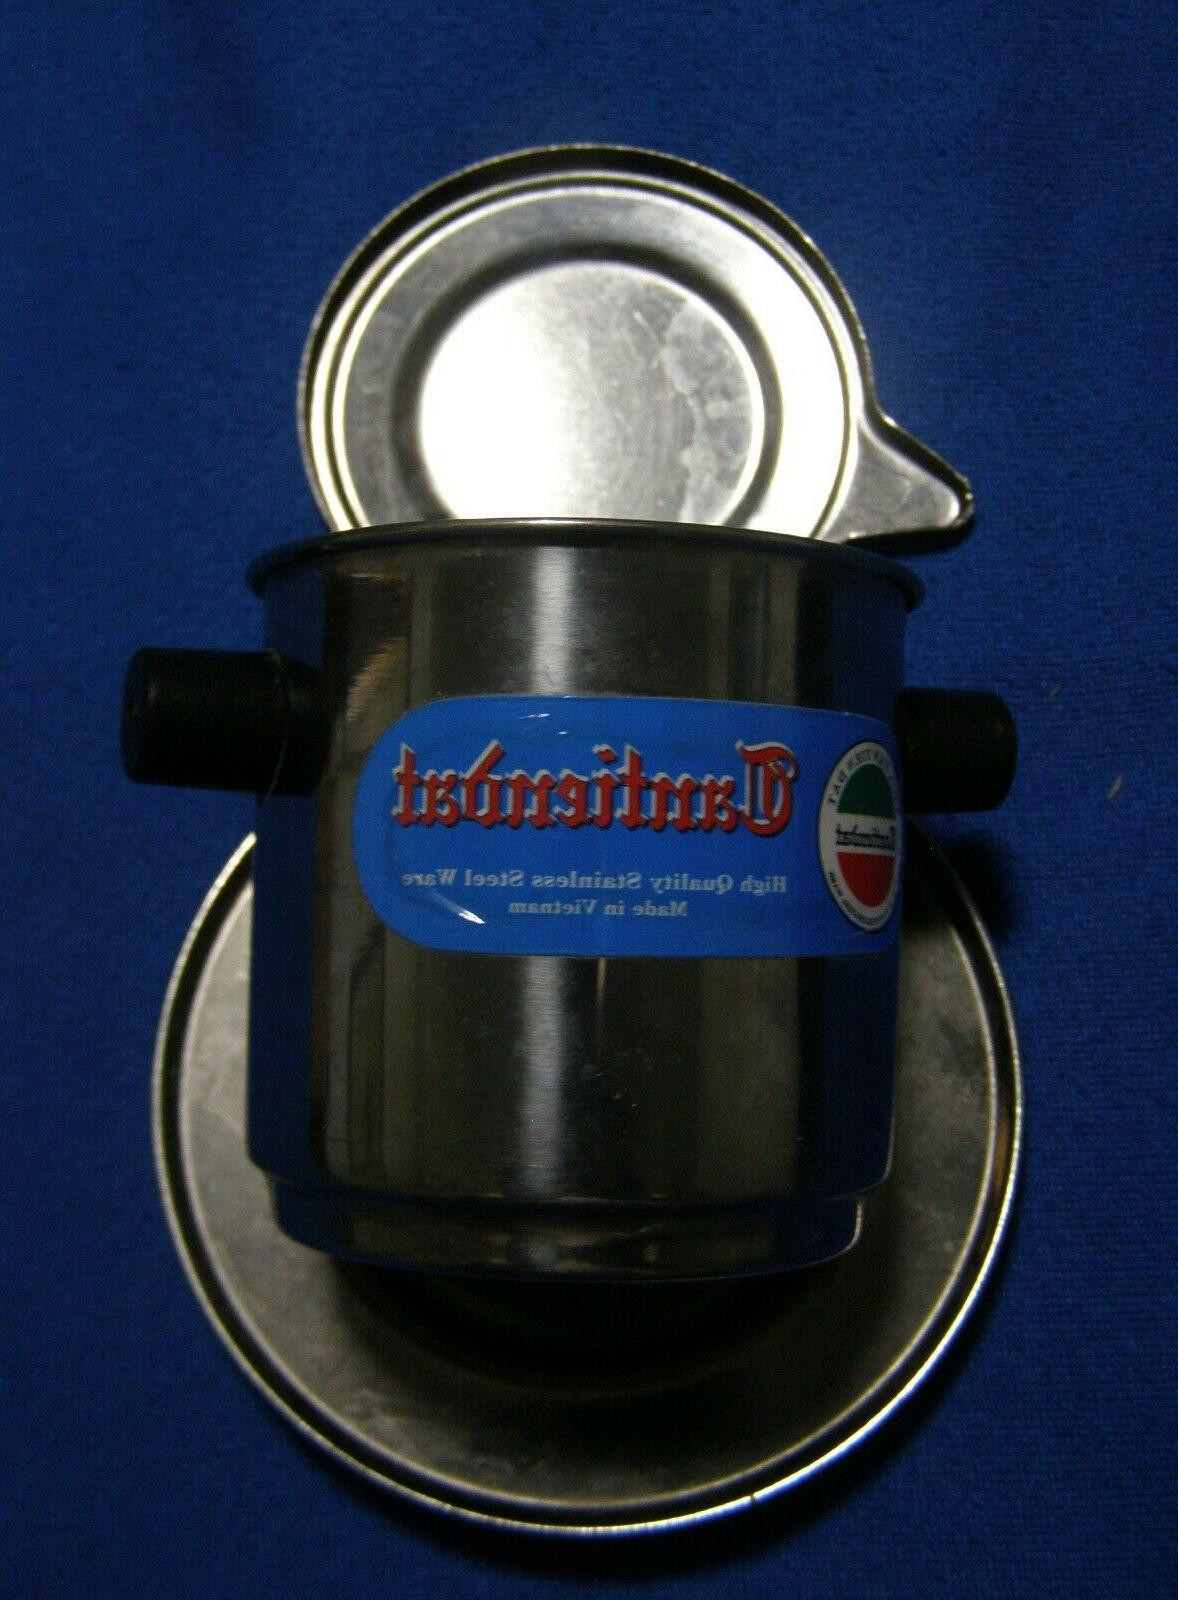 2 Cantiendat Stainless Steel Individual Makers Infusers